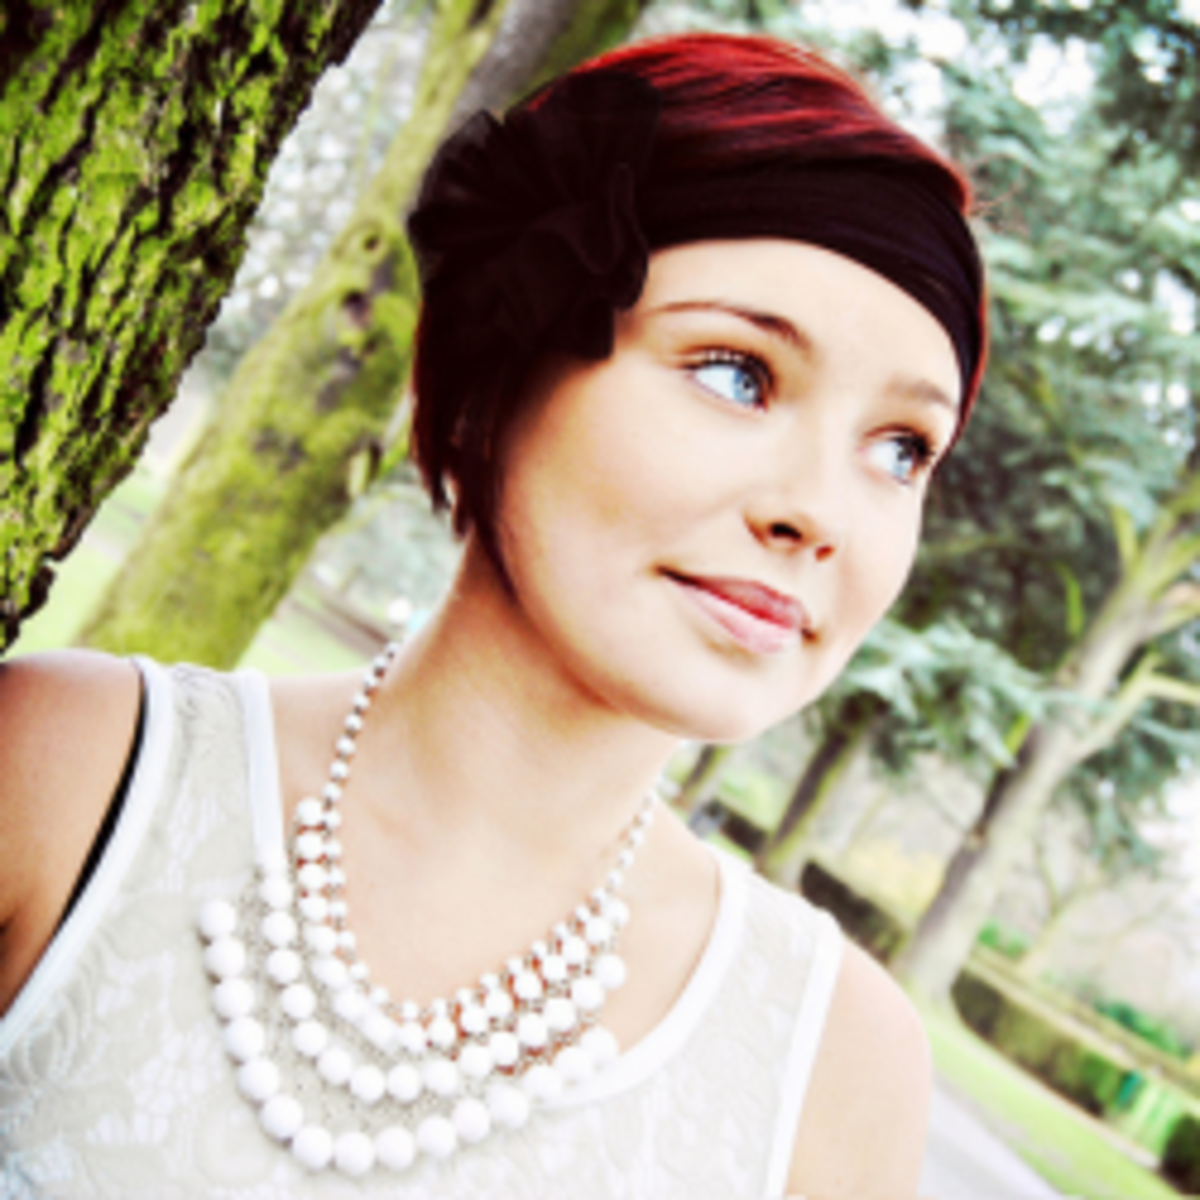 DIY Flapper Girl Costume: 1920s Great Gatsby Dresses, Accessories, Hair & Makeup Ideas